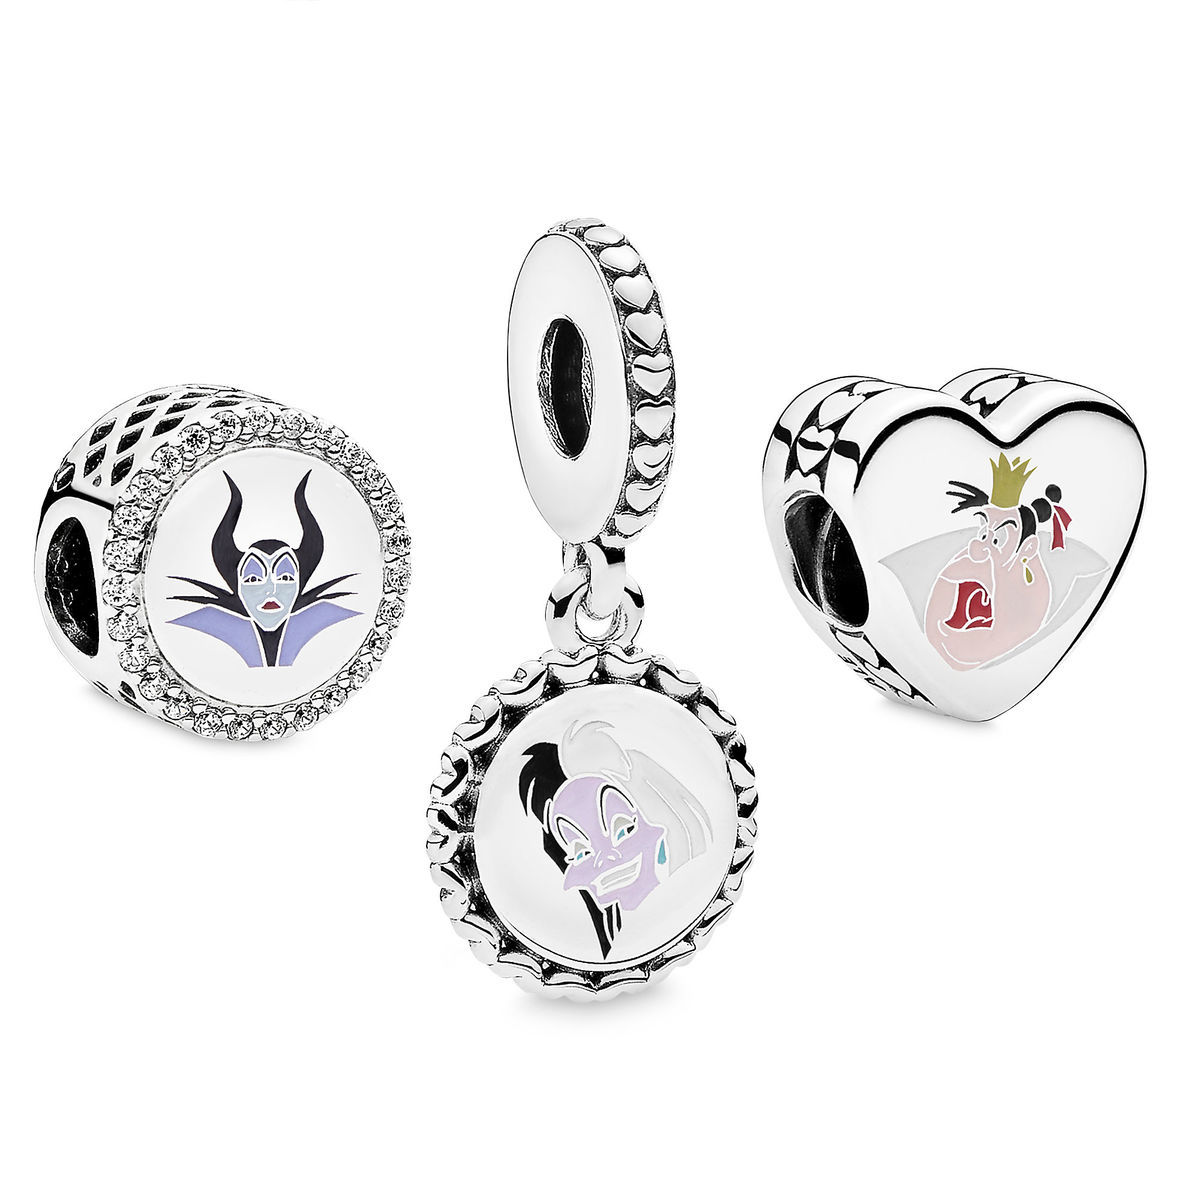 Product Image Of Disney Villains Charm Set By PANDORA 1